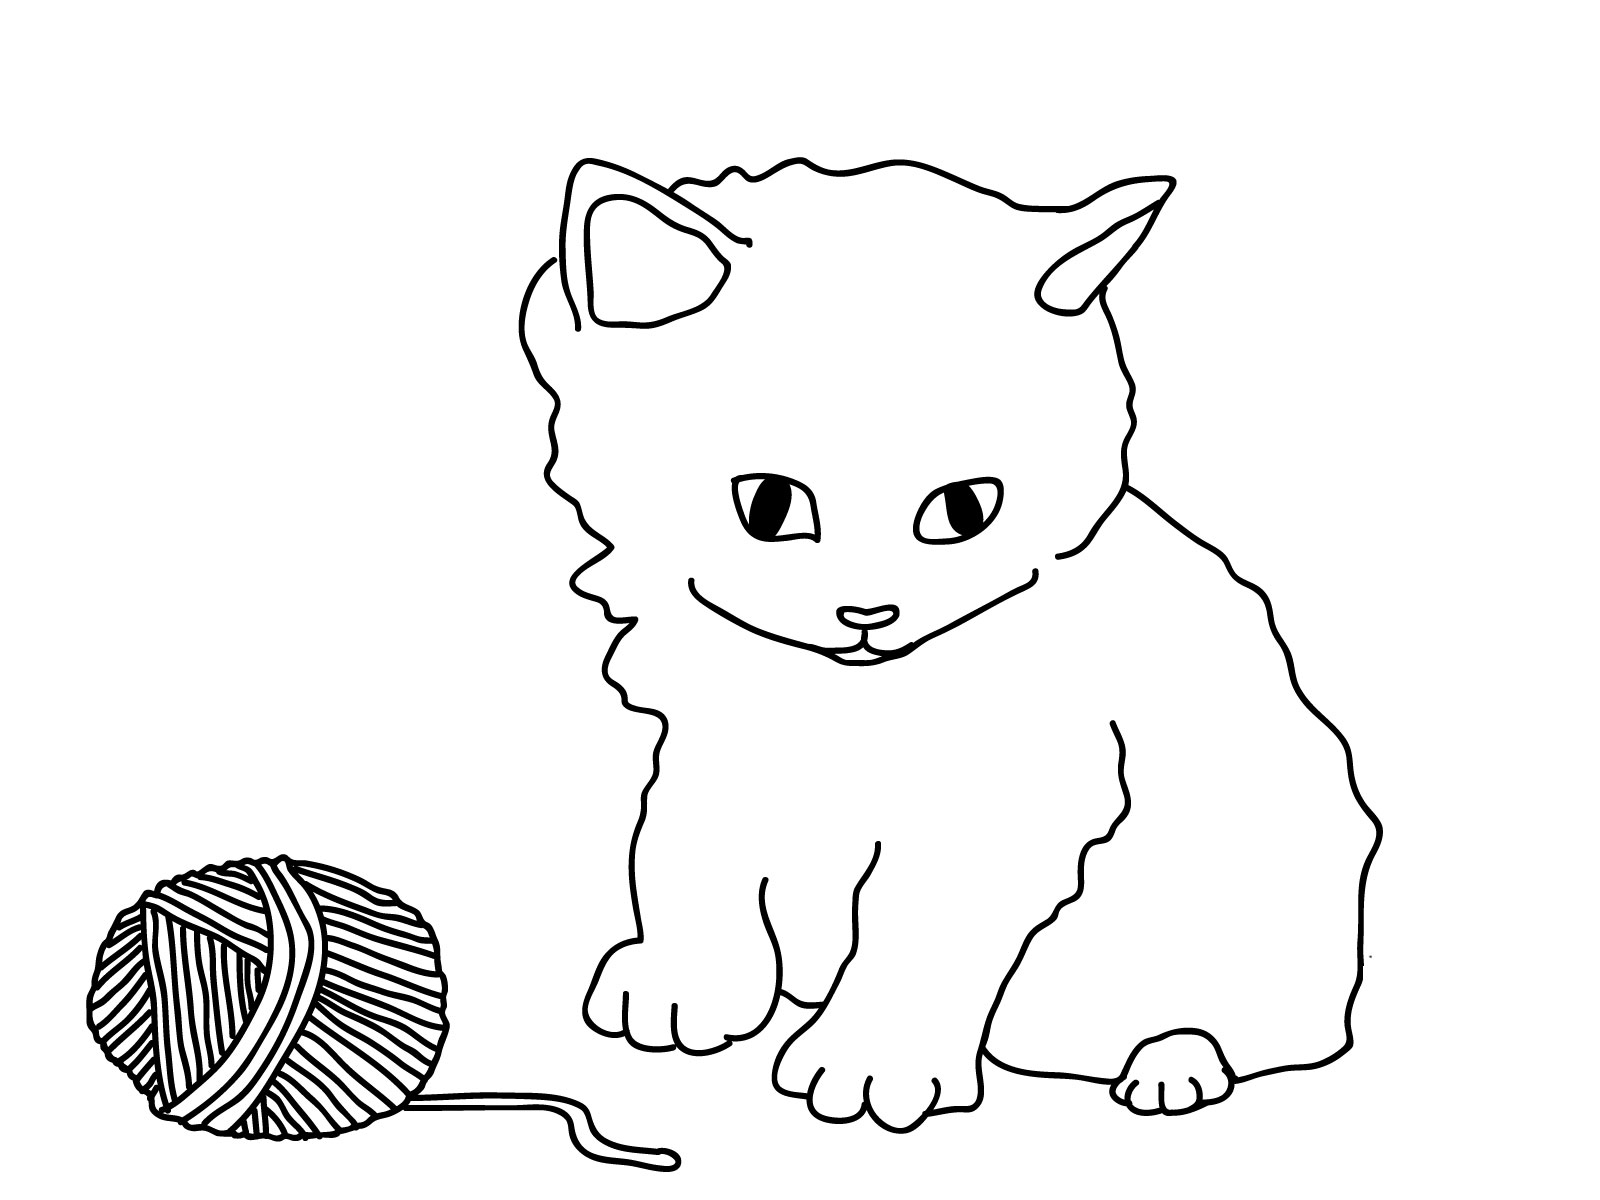 coloring pages kitty free printable kitten coloring pages for kids best kitty coloring pages